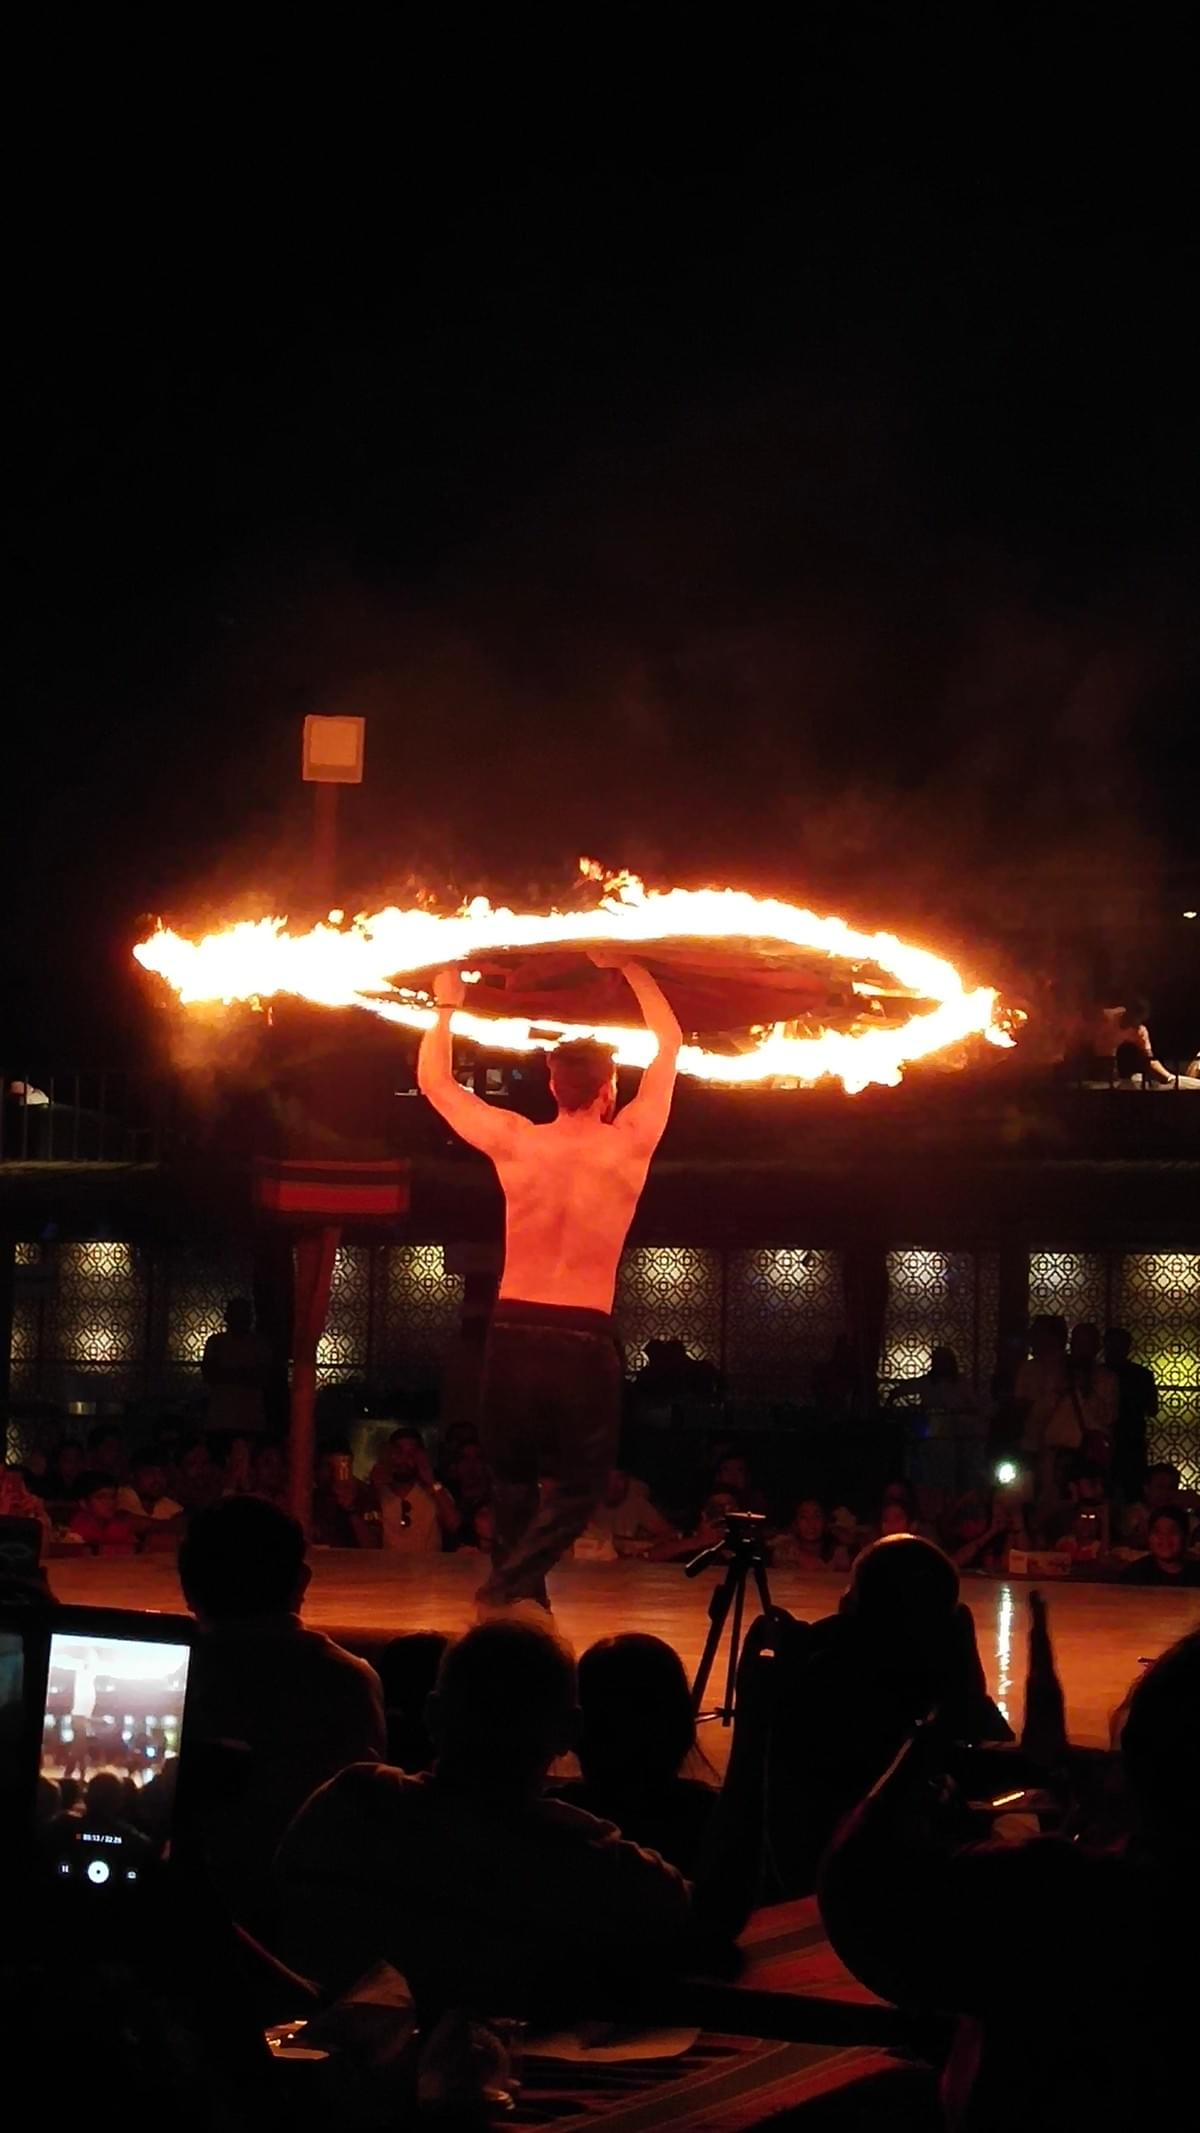 Fire Dancer at Dunes Camp - Places to Visit in Dubai